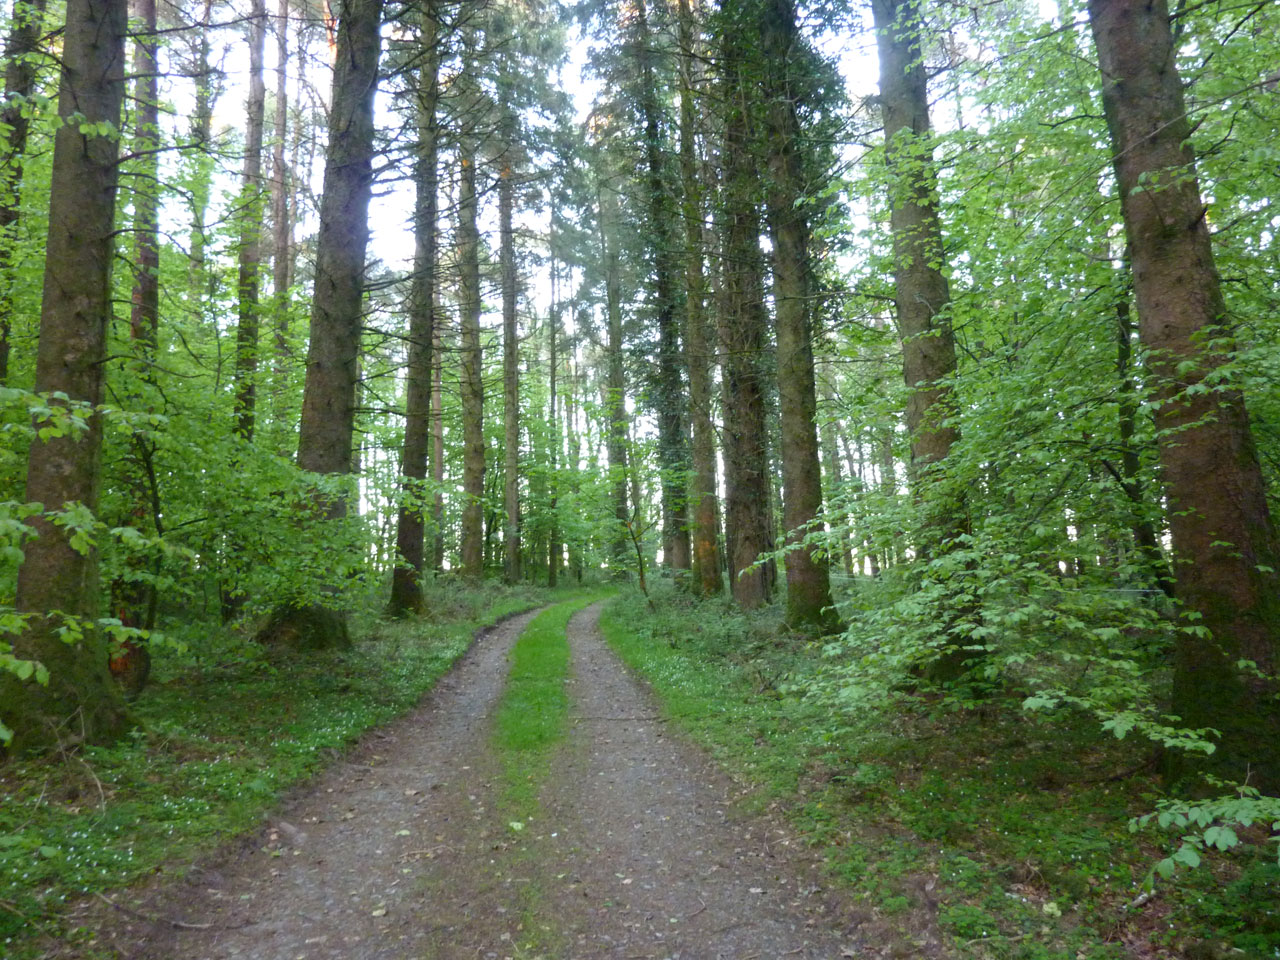 Majestic trees in the woodlands around Cullintra House, Kilkenny, Ireland